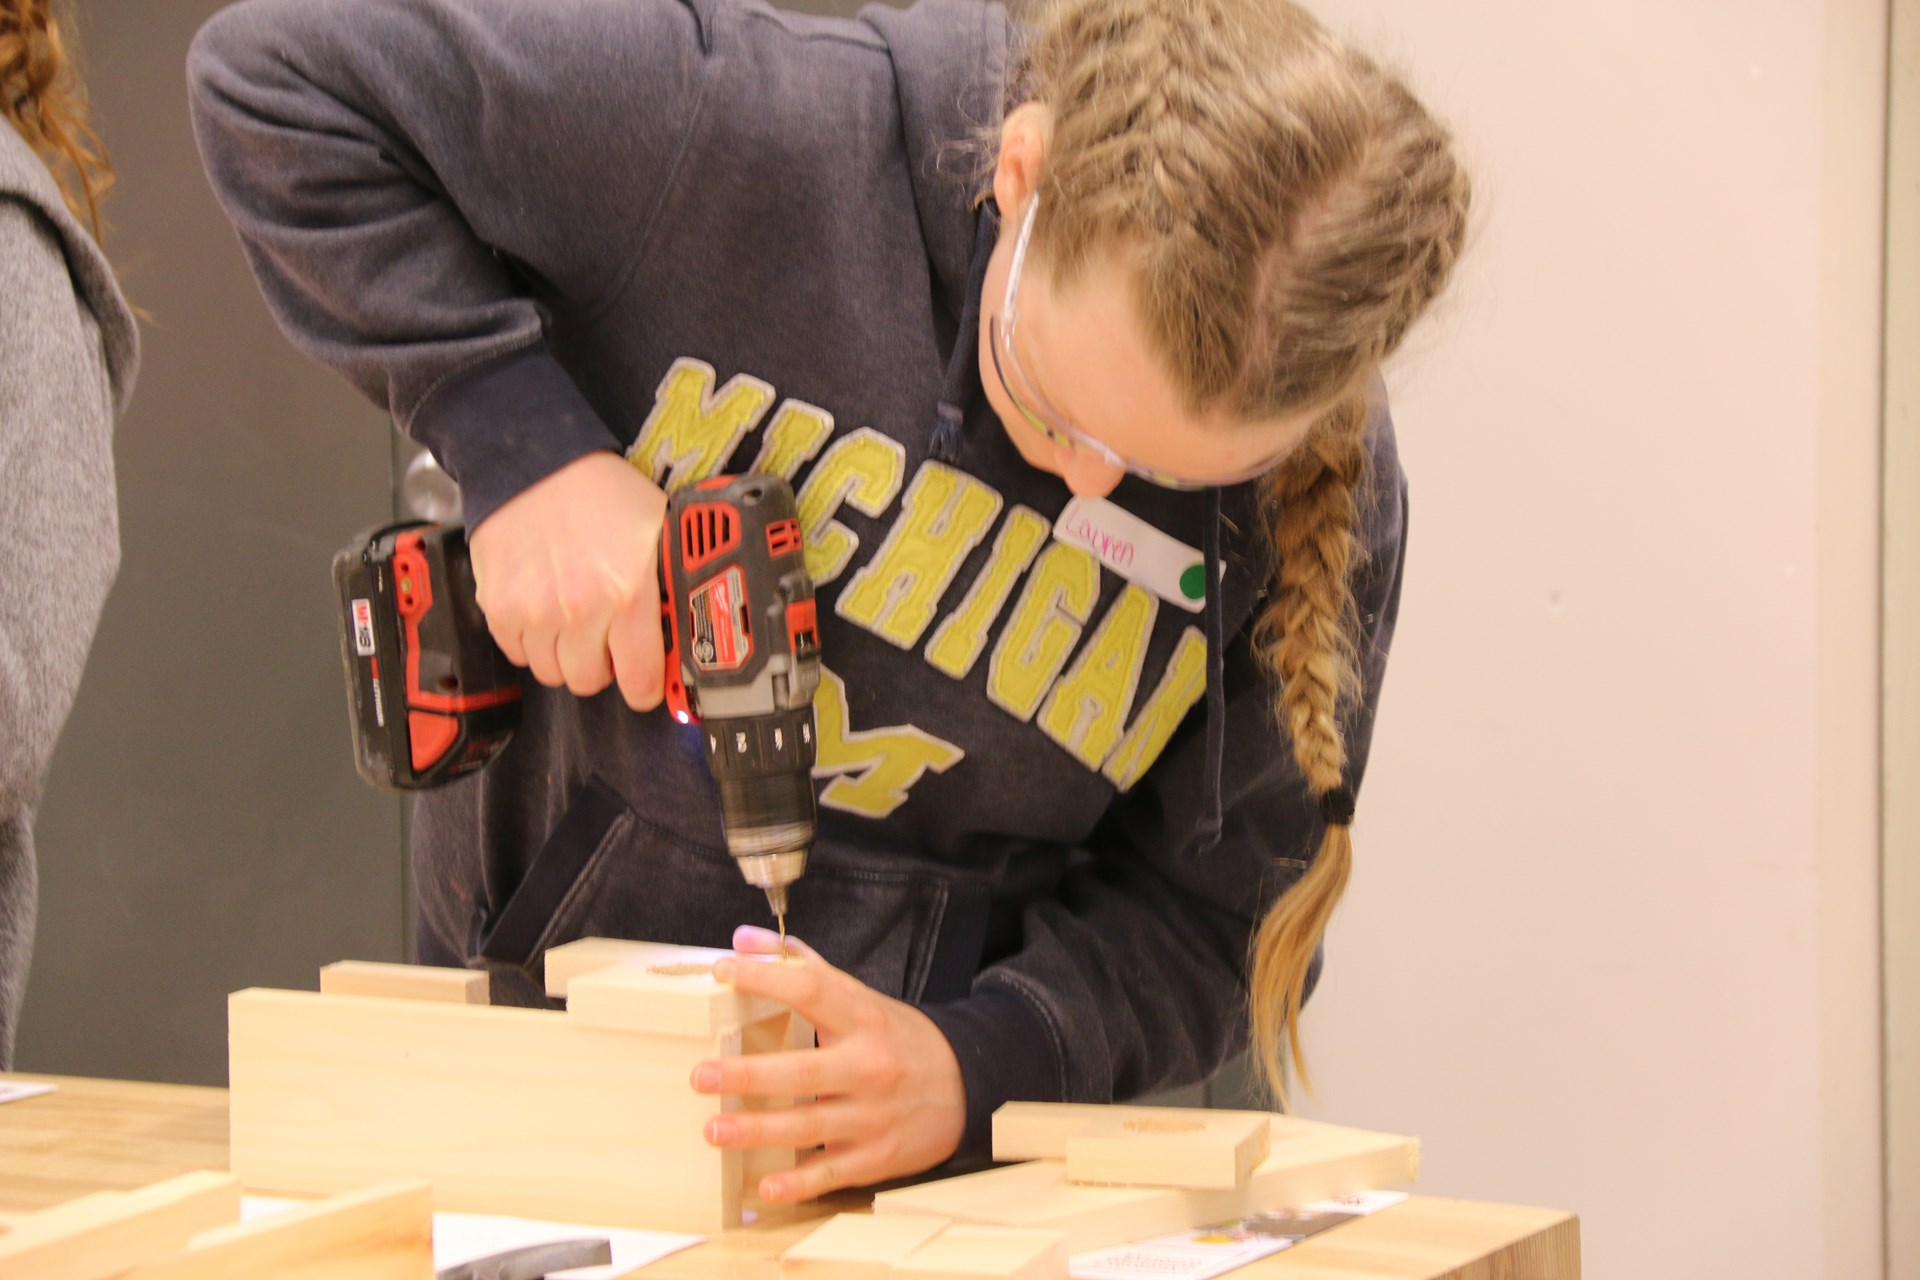 Student working at hands on activity with a drill